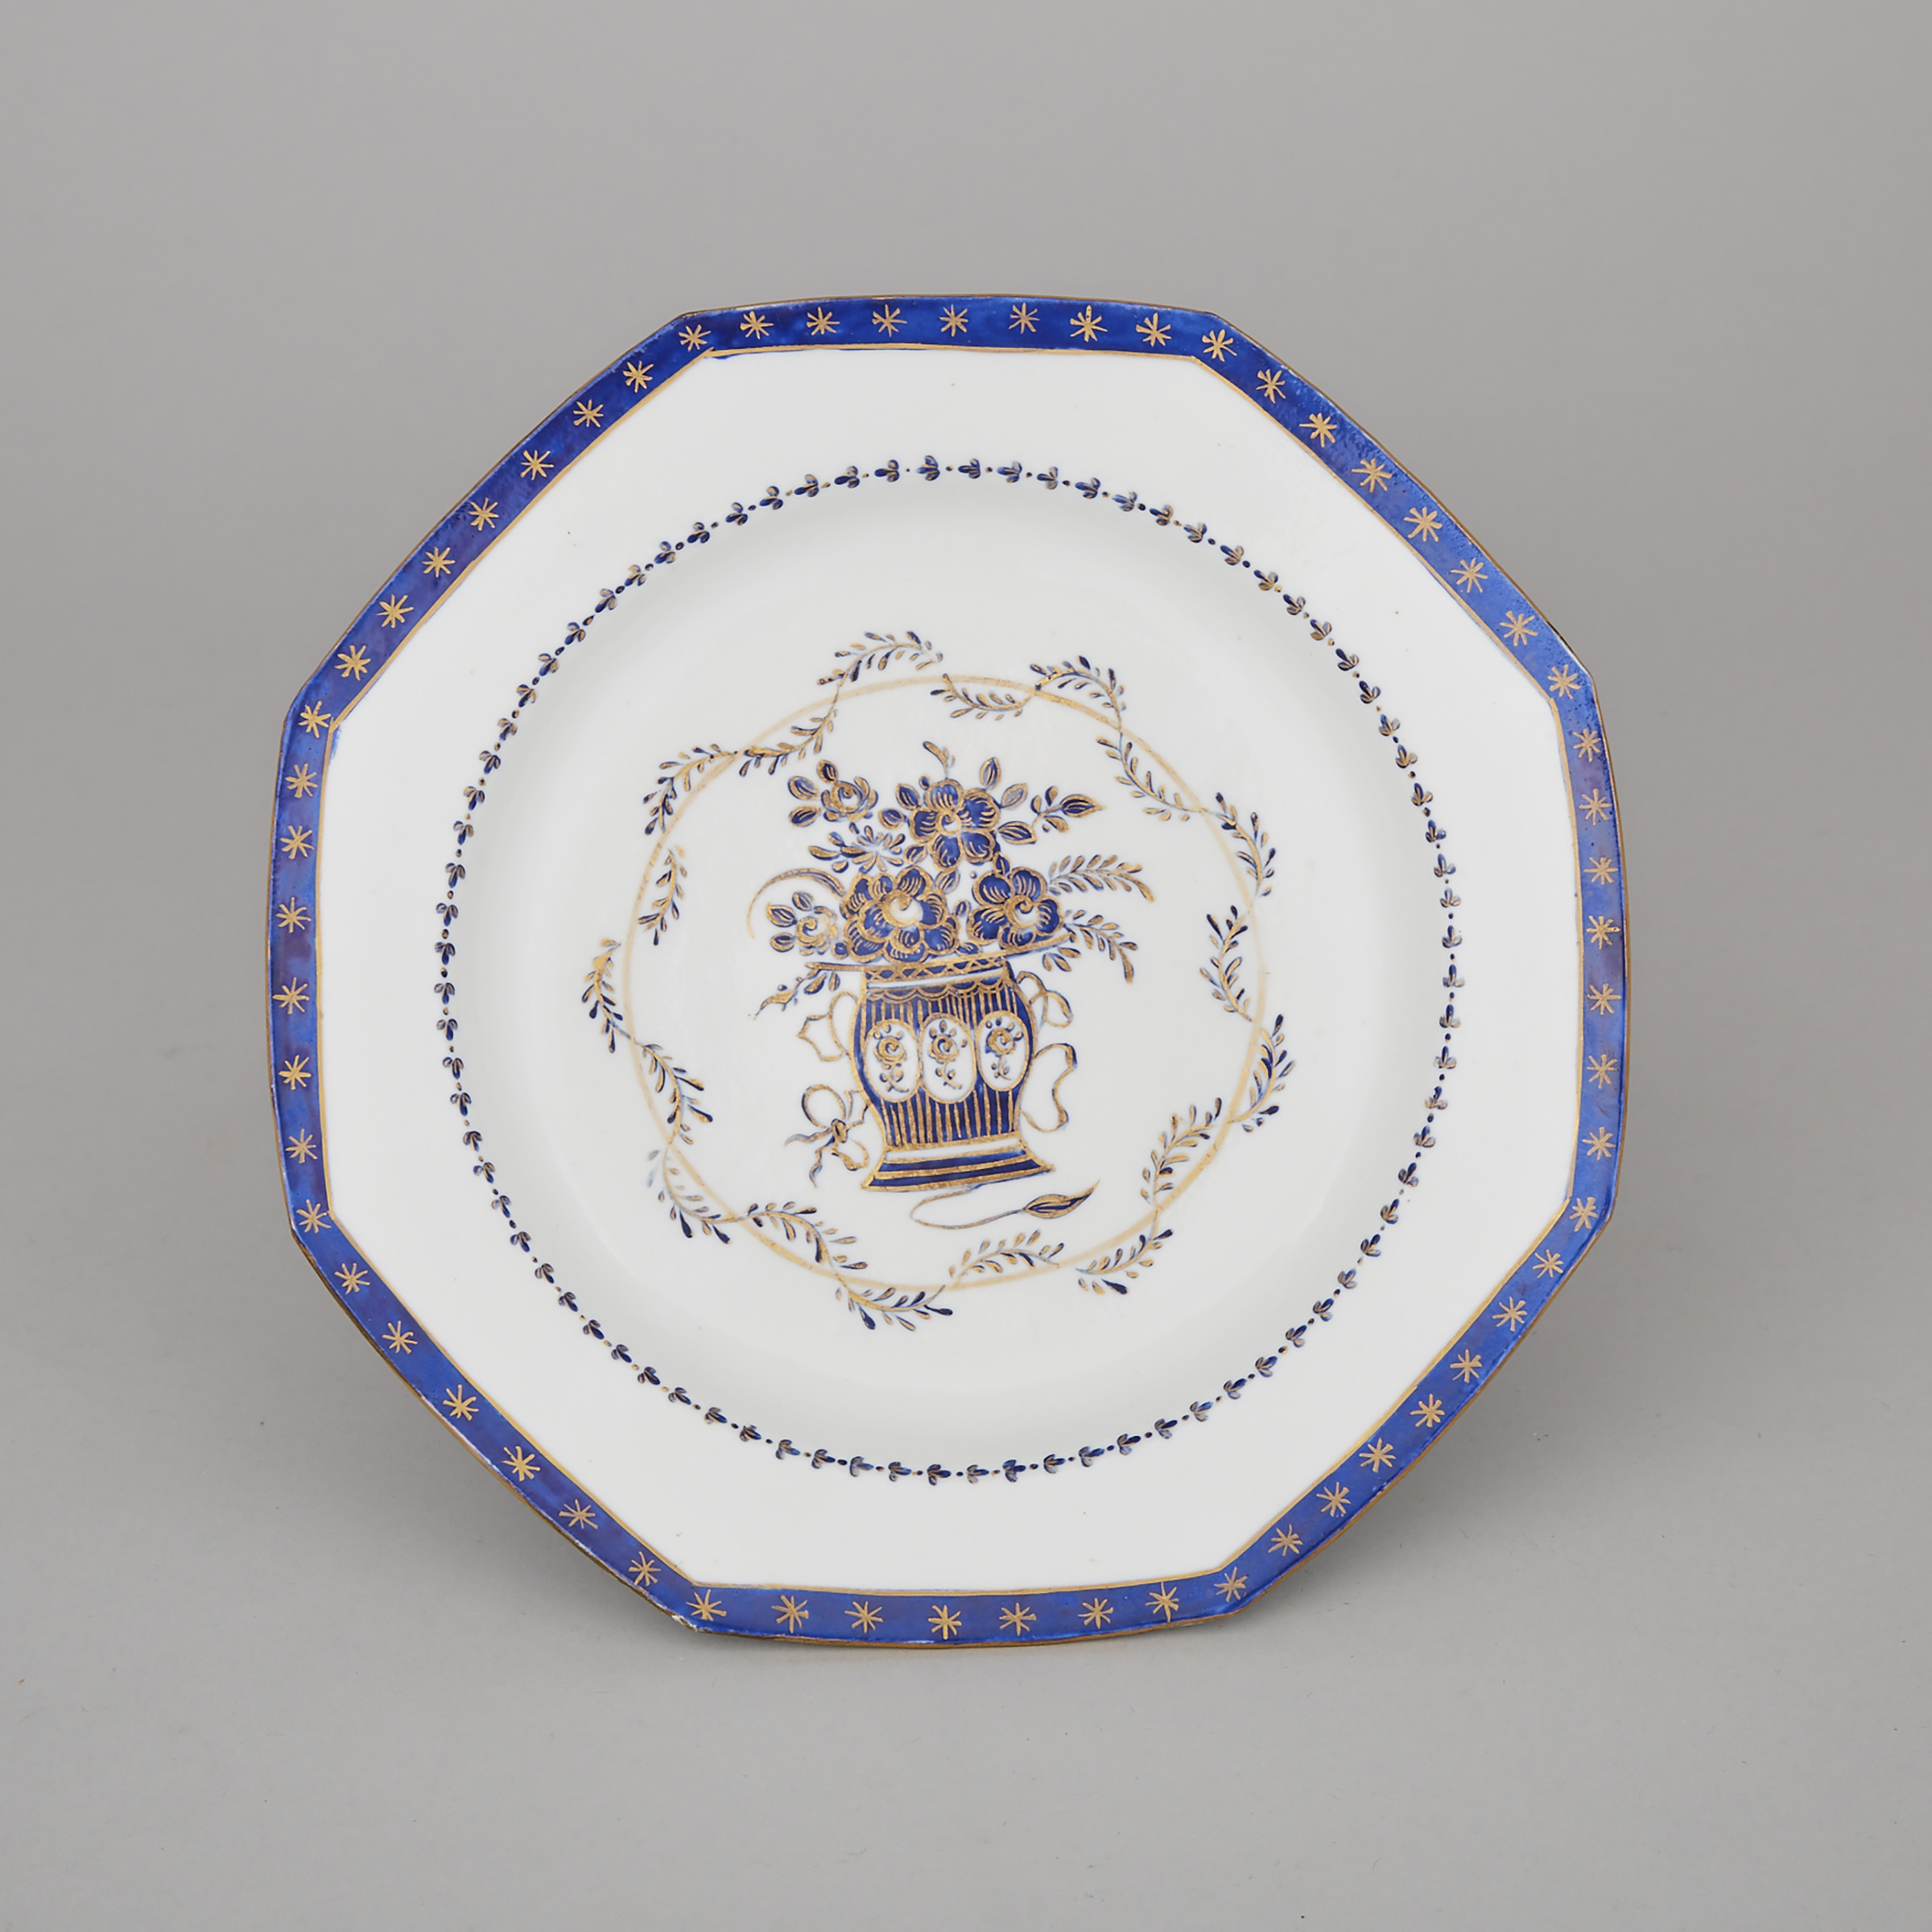 Bow Cobalt Blue and Gilt Decorated Octagonal Plate, c.1760